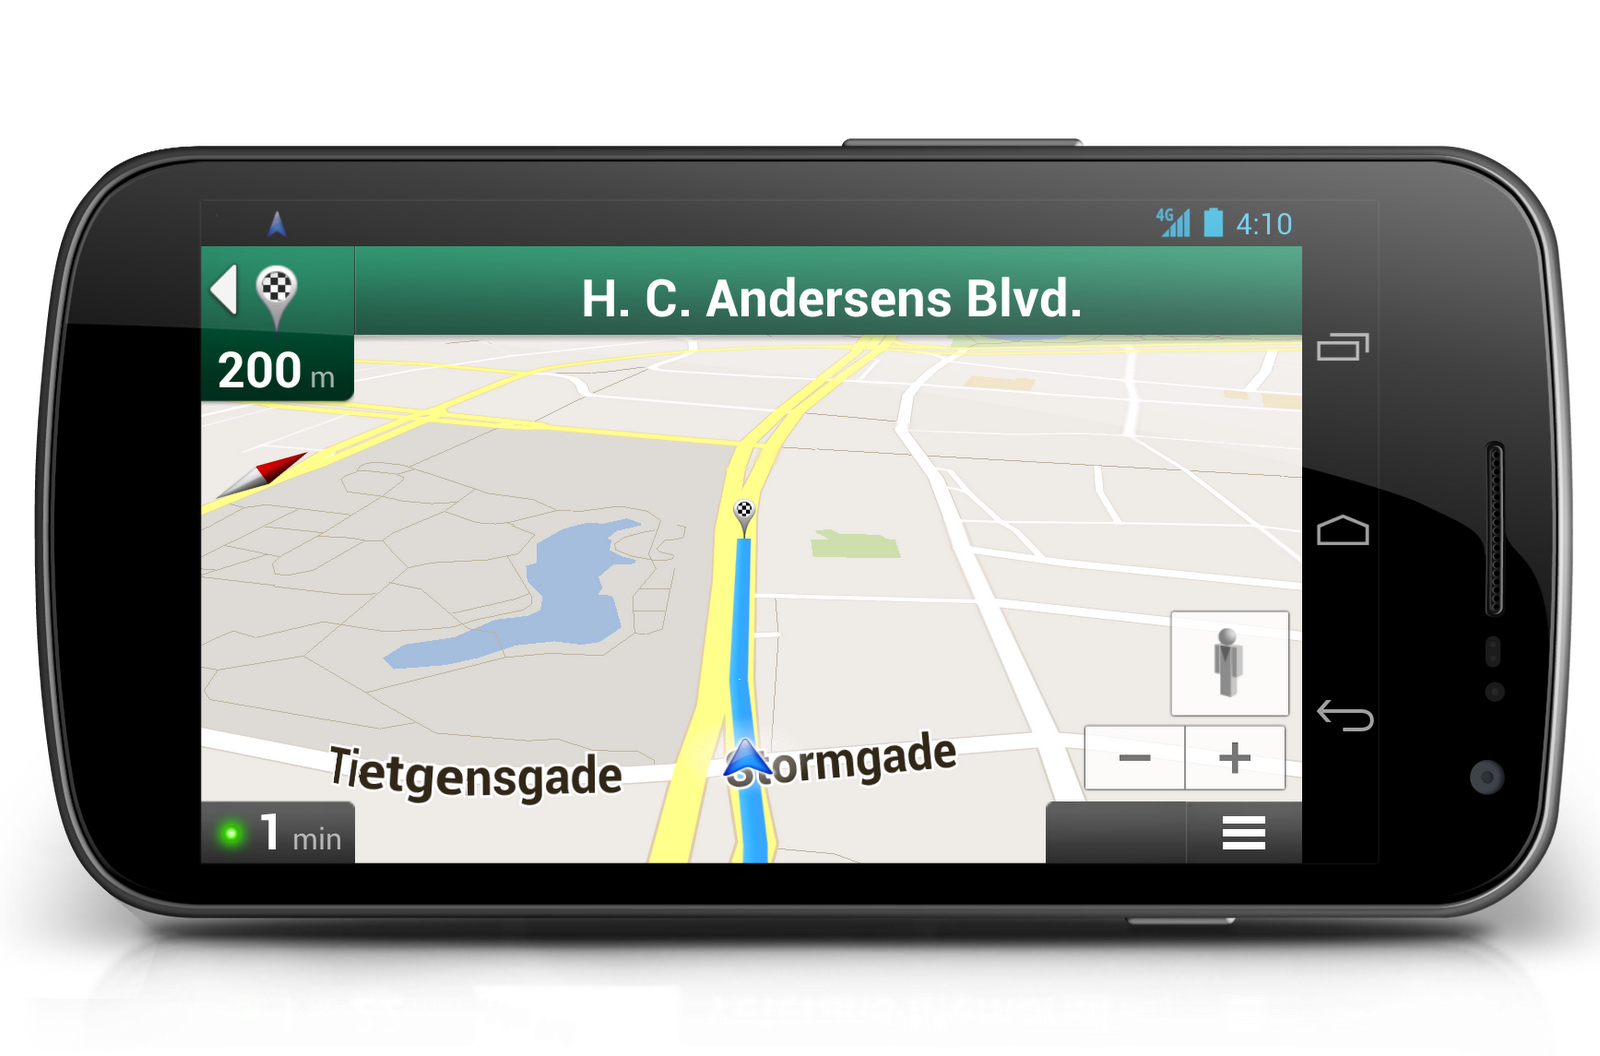 gps navigation google maps with Half Gigameter Of Biking Navigation In on A Map Of The World likewise Circle location icon besides File Map pin icon as well Waze Maps likewise Ae126848 66d5 46ef 99b9 C116796b7389.